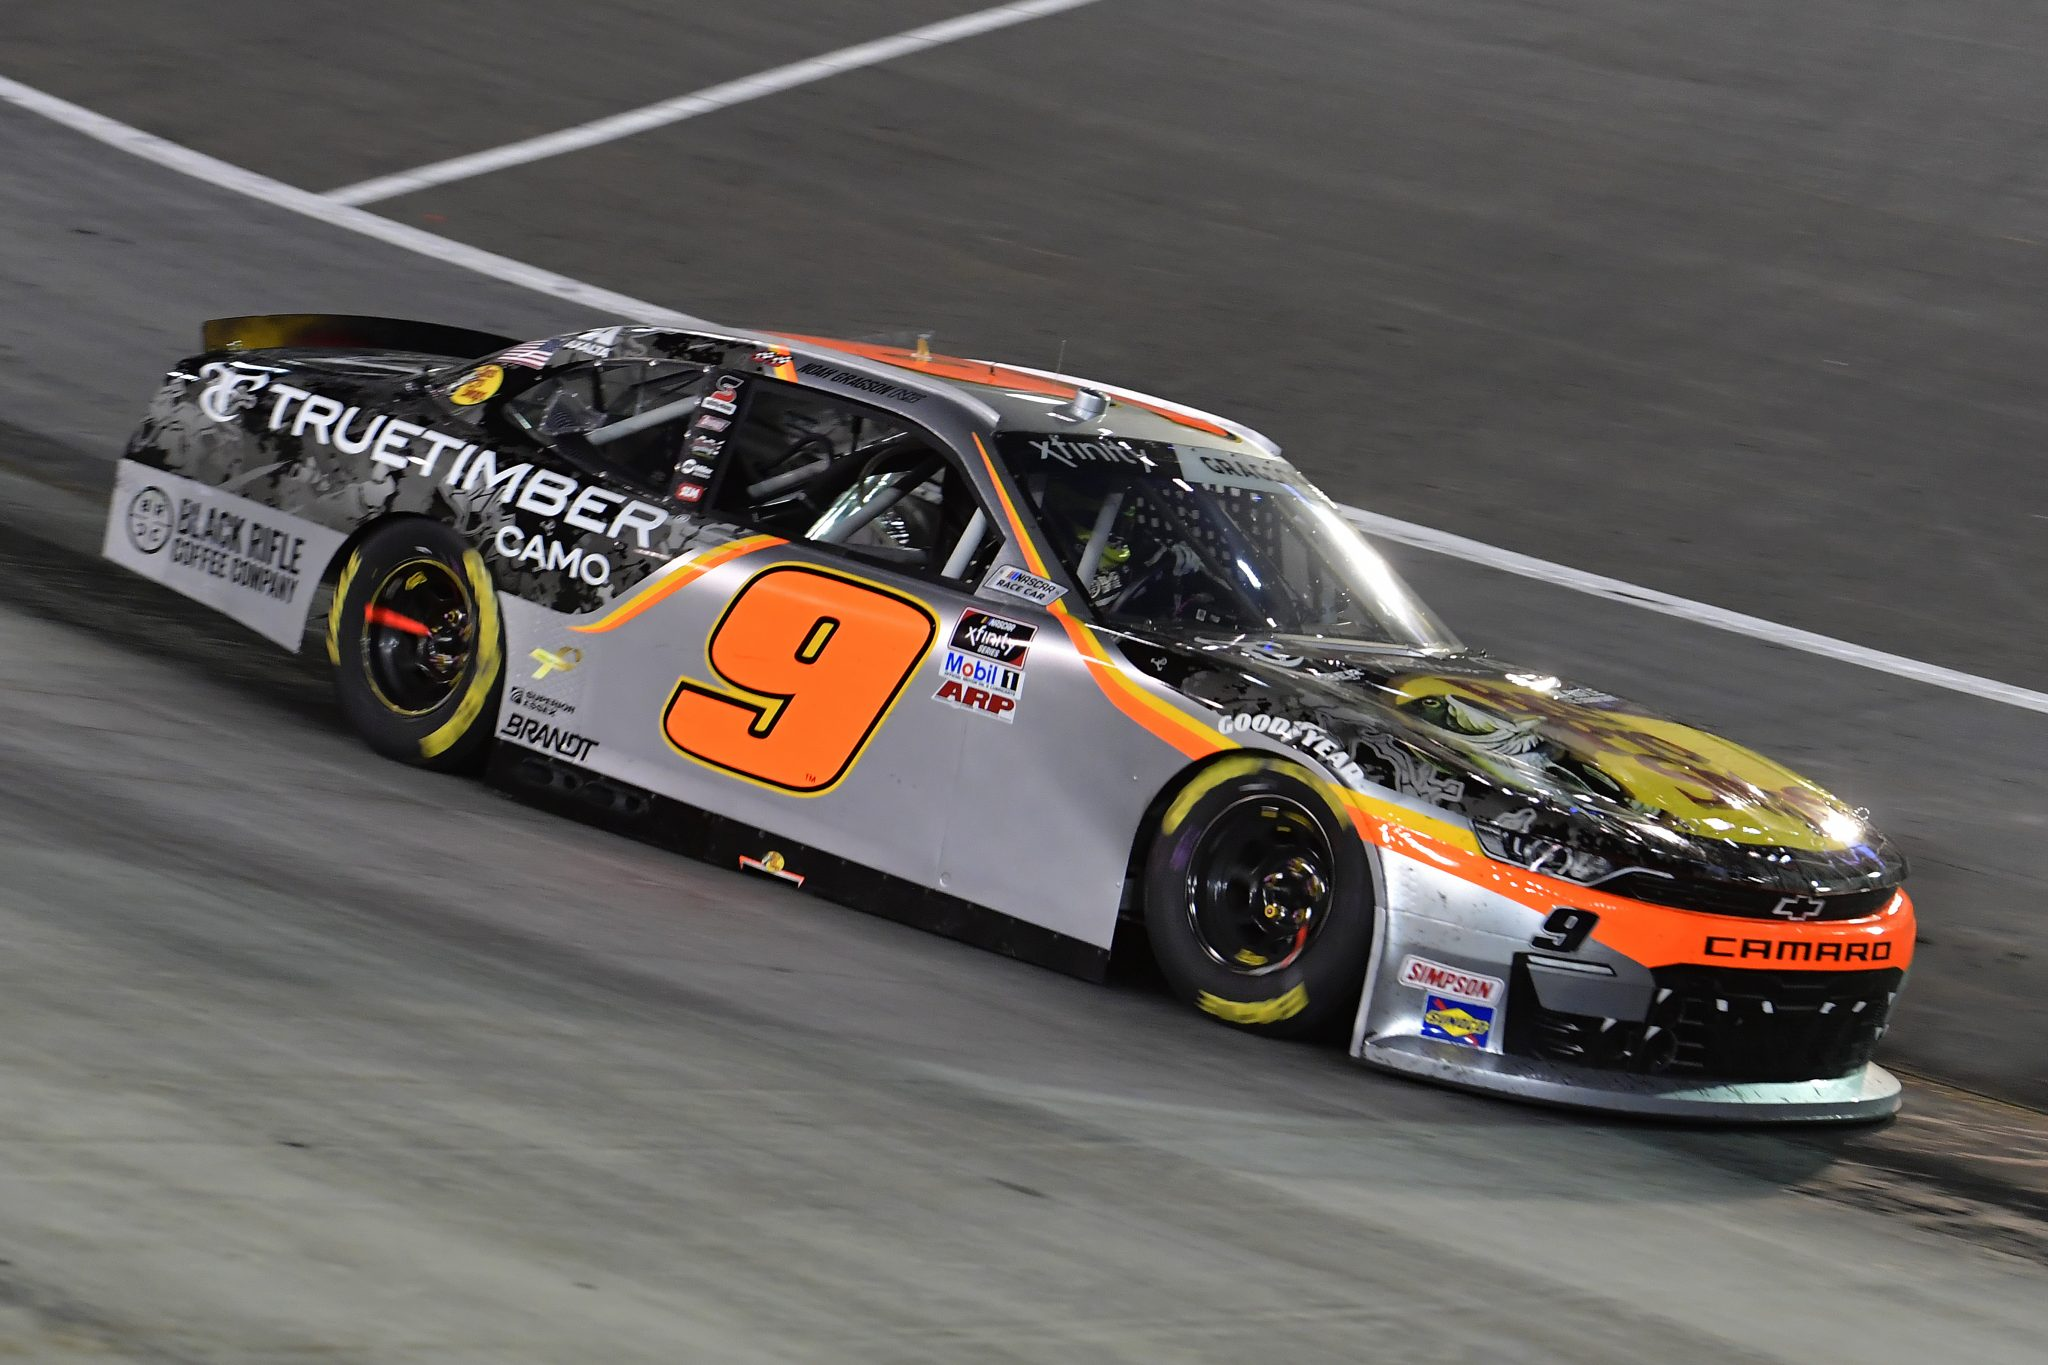 BRISTOL, TENNESSEE - SEPTEMBER 17: Noah Gragson, driver of the #9 Bass Pro Shops/TrueTimber/BRCC Chevrolet, drives during the NASCAR Xfinity Series Food City 300 at Bristol Motor Speedway on September 17, 2021 in Bristol, Tennessee. (Photo by Logan Riely/Getty Images) | Getty Images